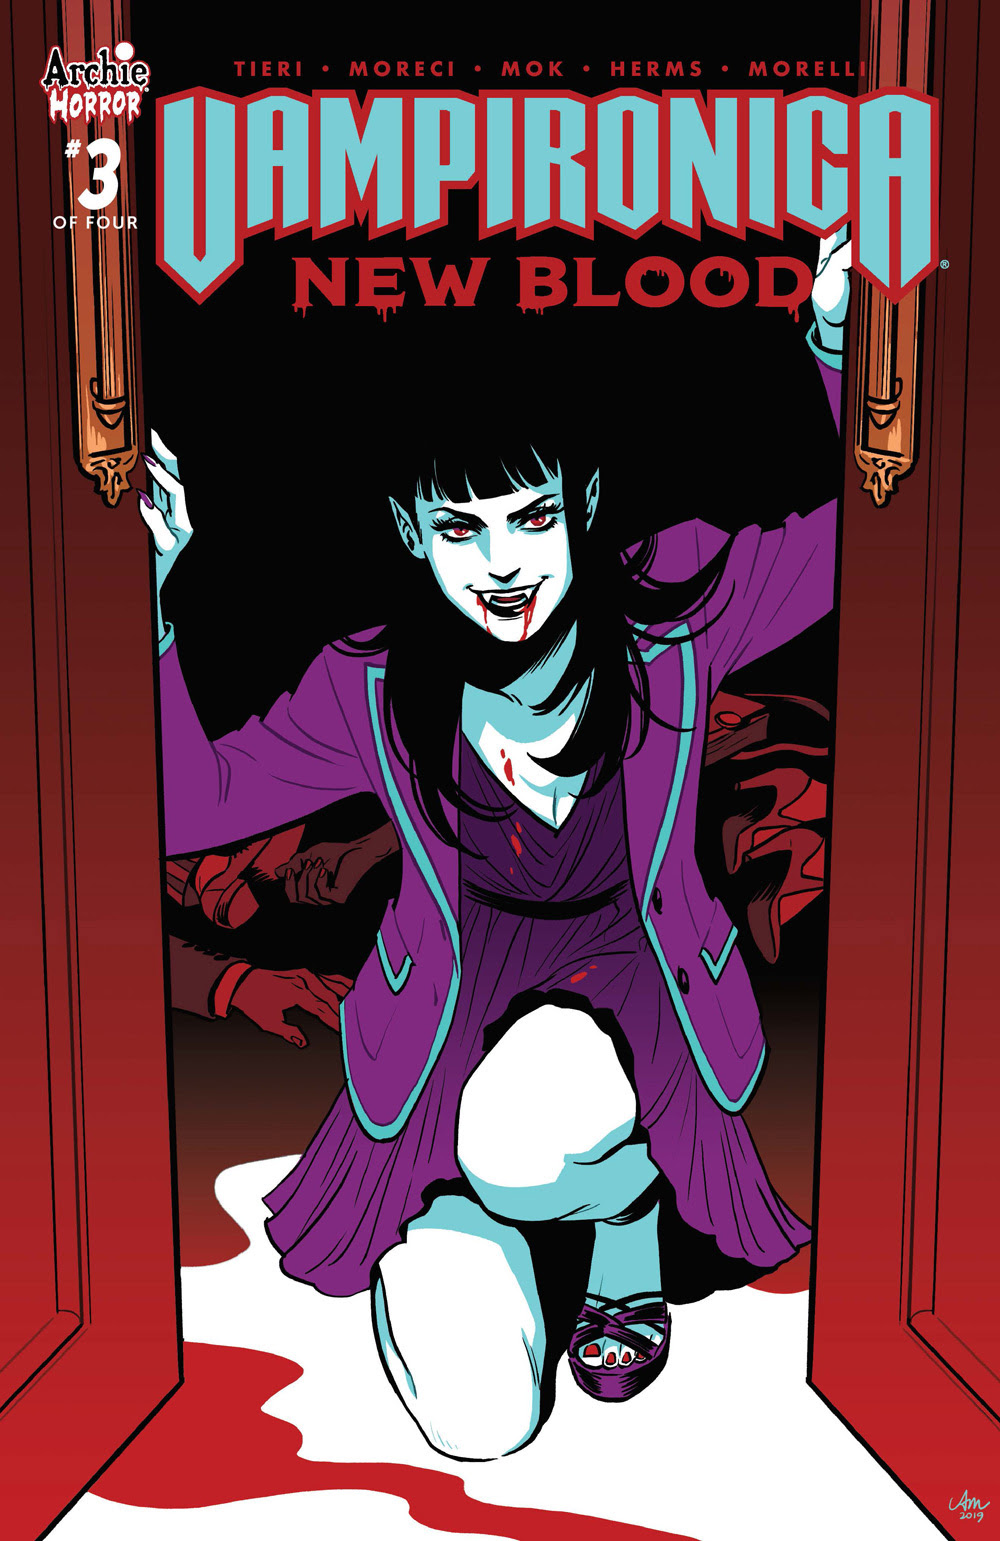 VAMPIRONICA: NEW BLOOD #3: Cover A Mok